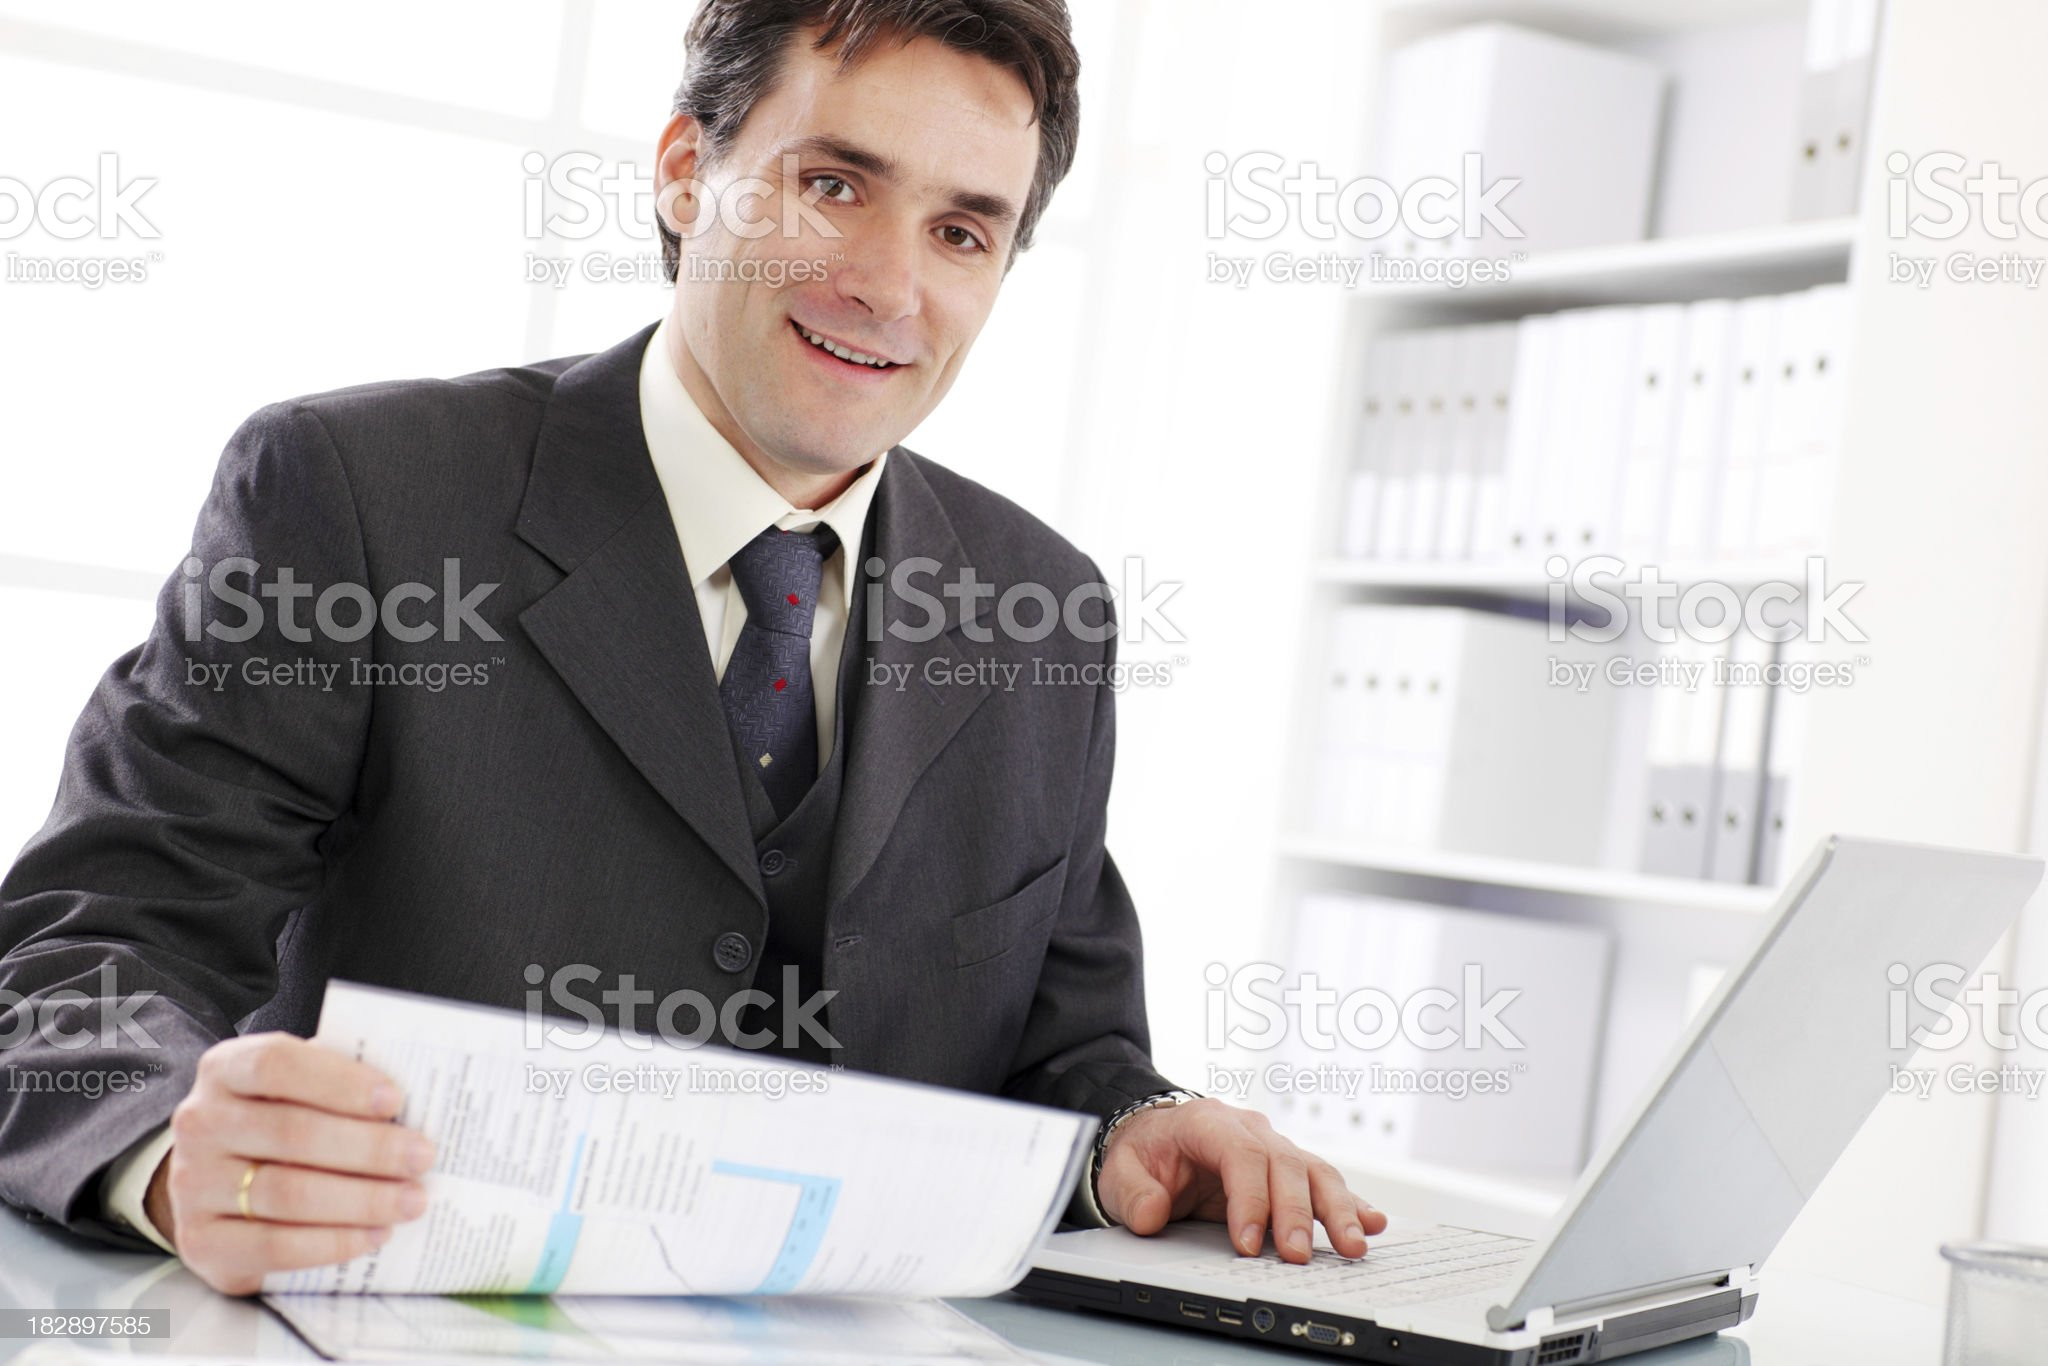 Happy business man working on laptop. royalty-free stock photo